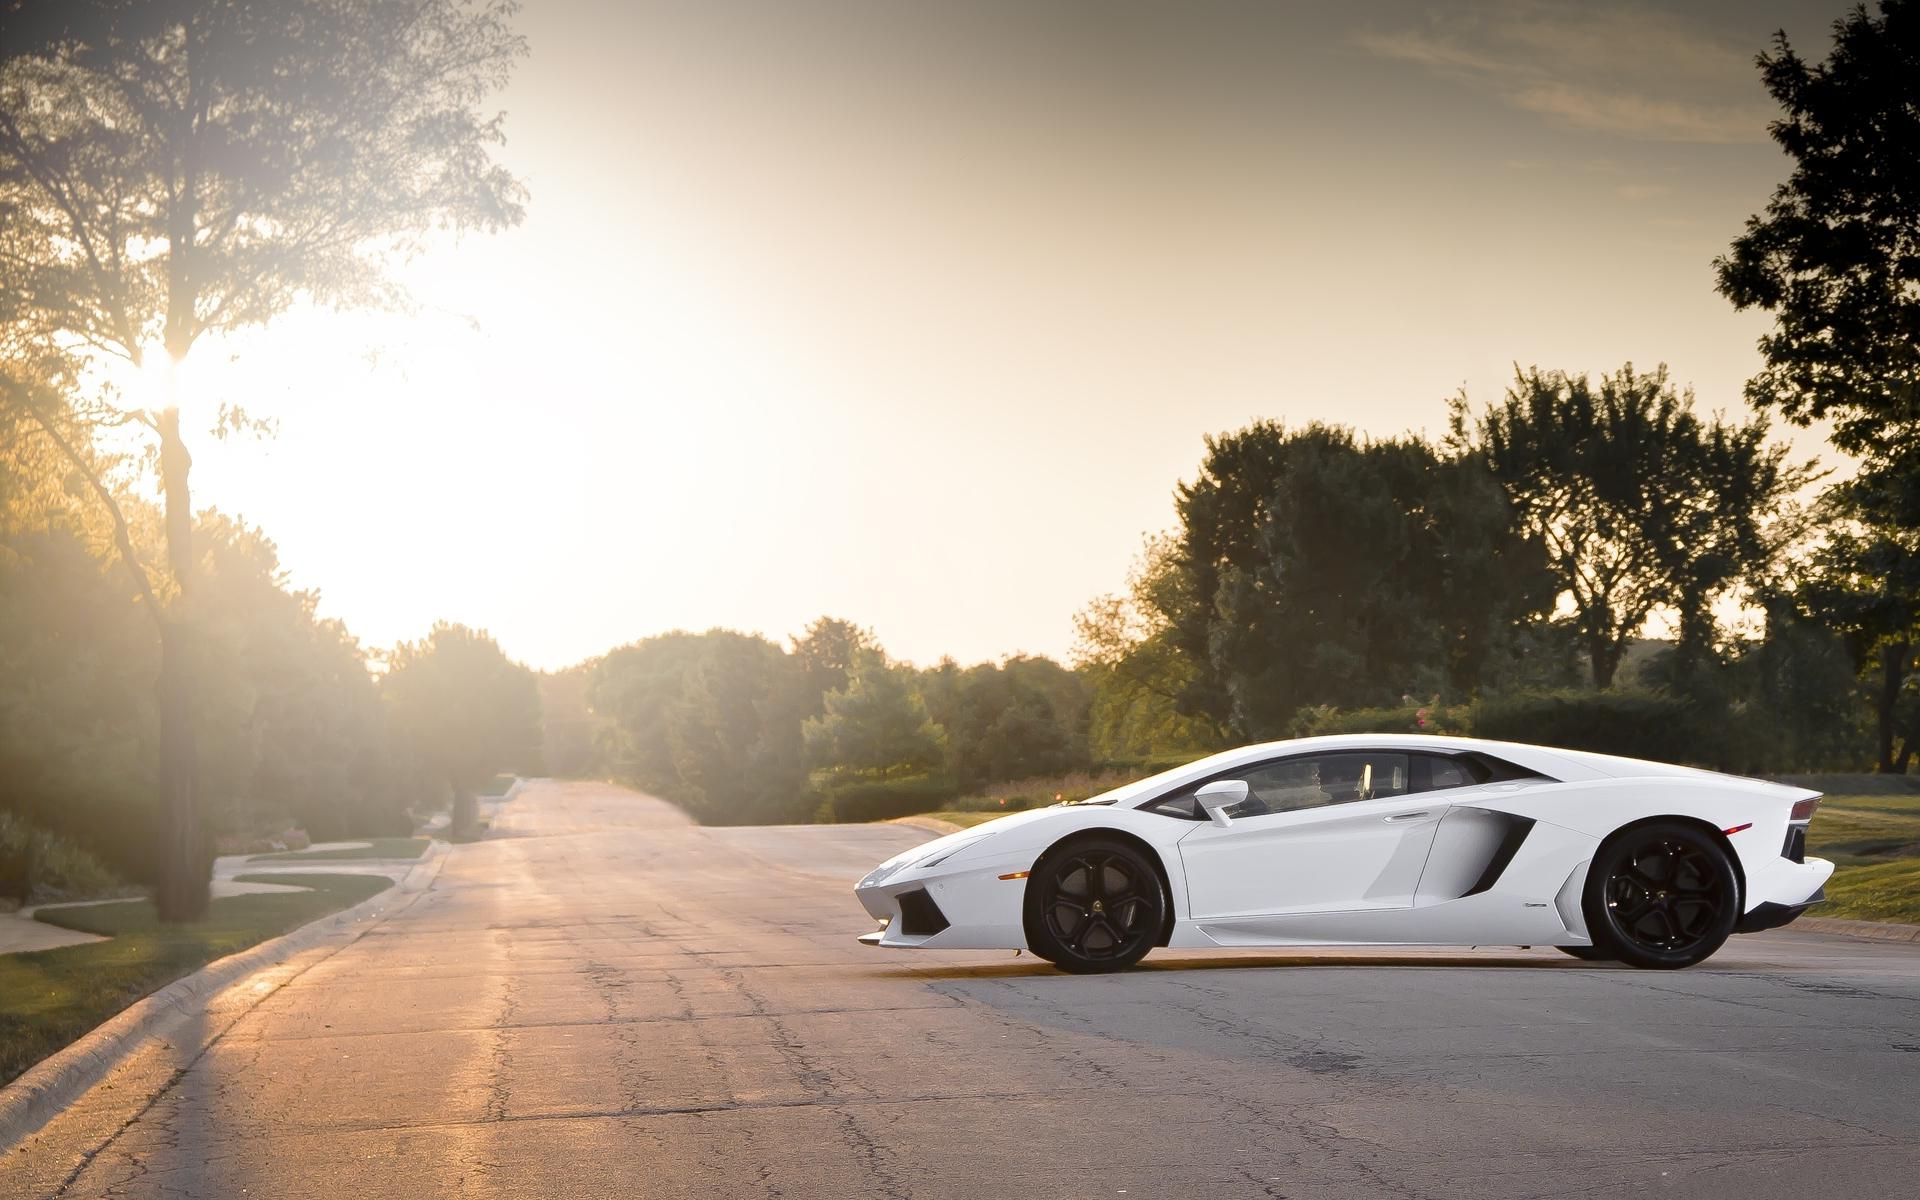 Lambo lp700 sunset